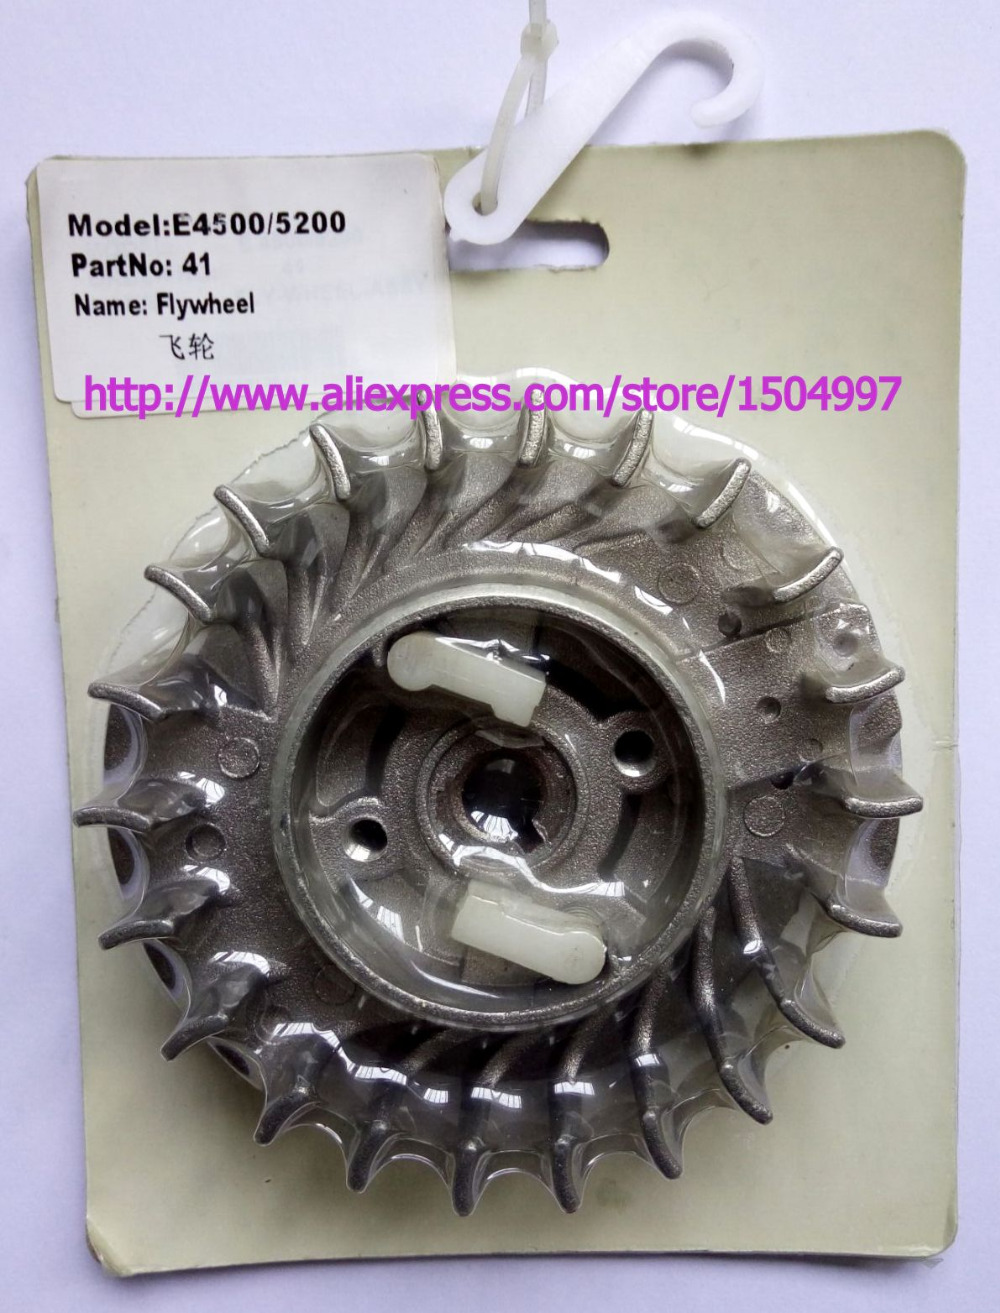 Replacement Parts fly wheel fits Polrad passend fur FLYWHEEL FOR CHINESE CHAINSAW 45CC 52CC 58CC 4500 5200 5800 Neilsen MT-9999 45cc 52cc 58cc chainsaw clutch replacement for poulan 4500 5200 5800 chain saw parts accessory